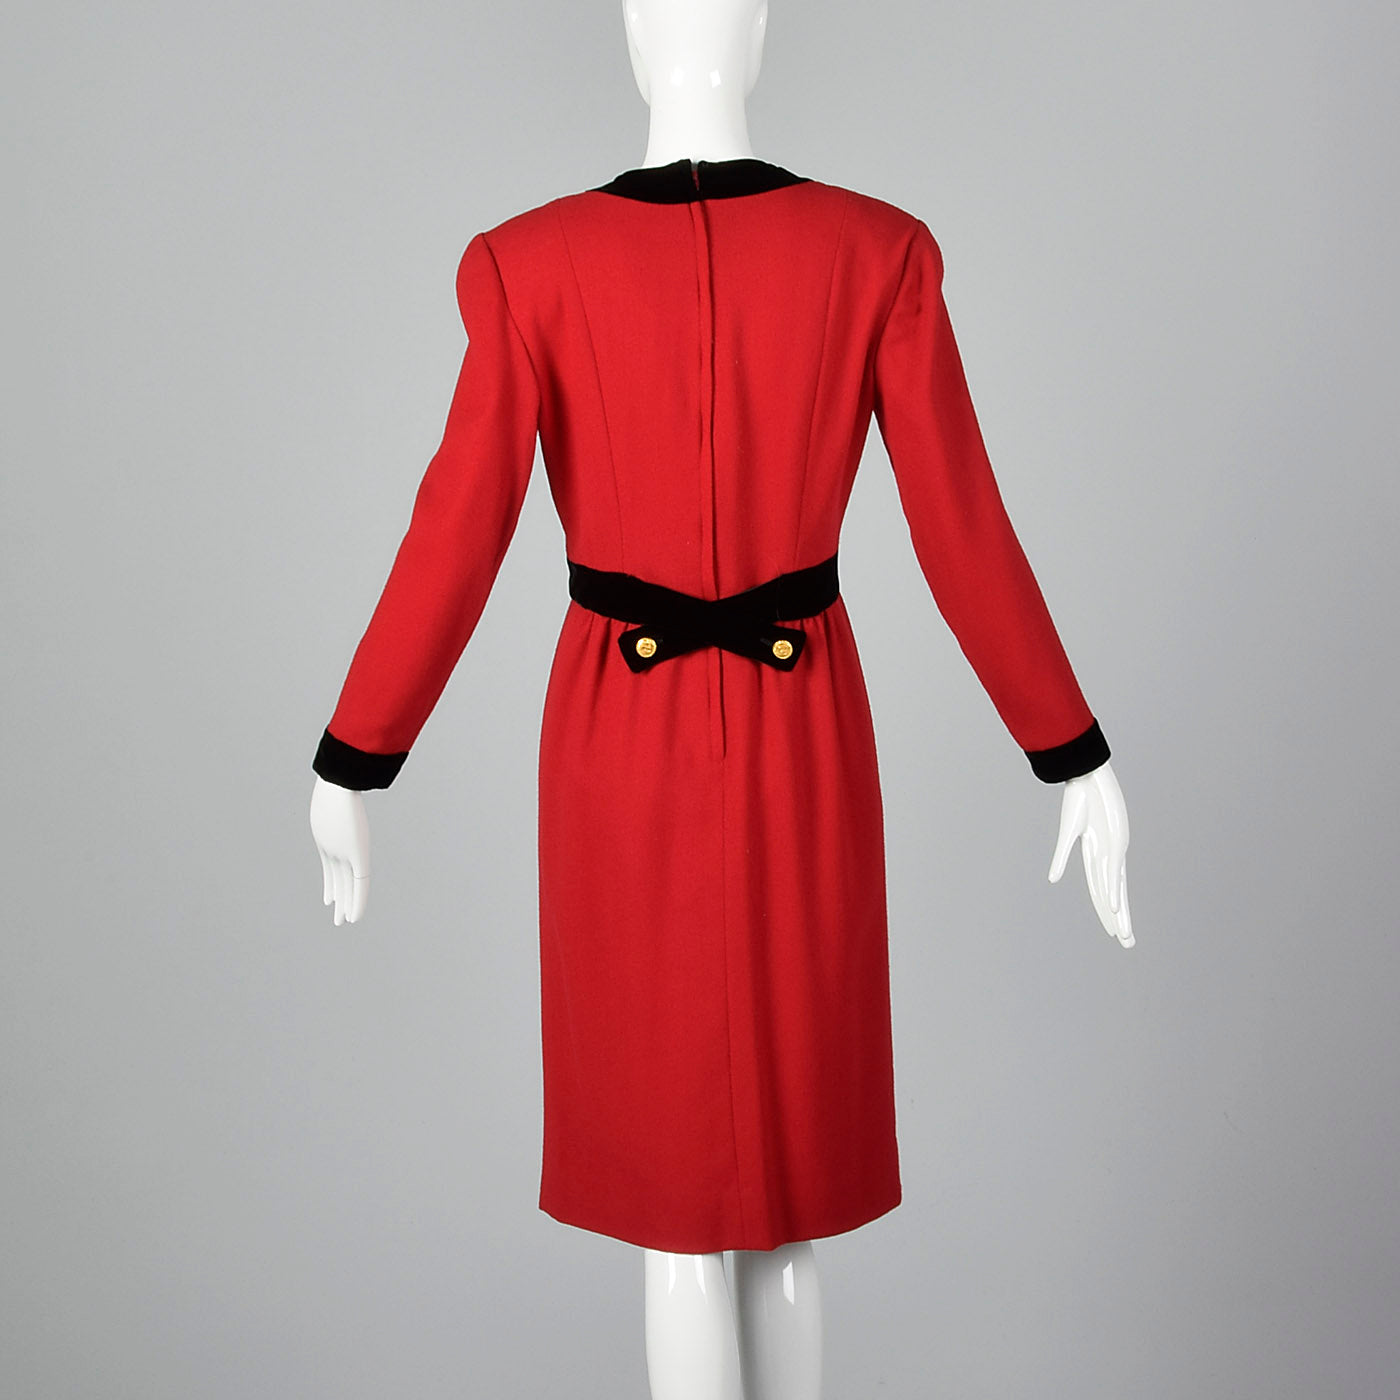 1980s Red Wool Dress with Black Velvet Trim